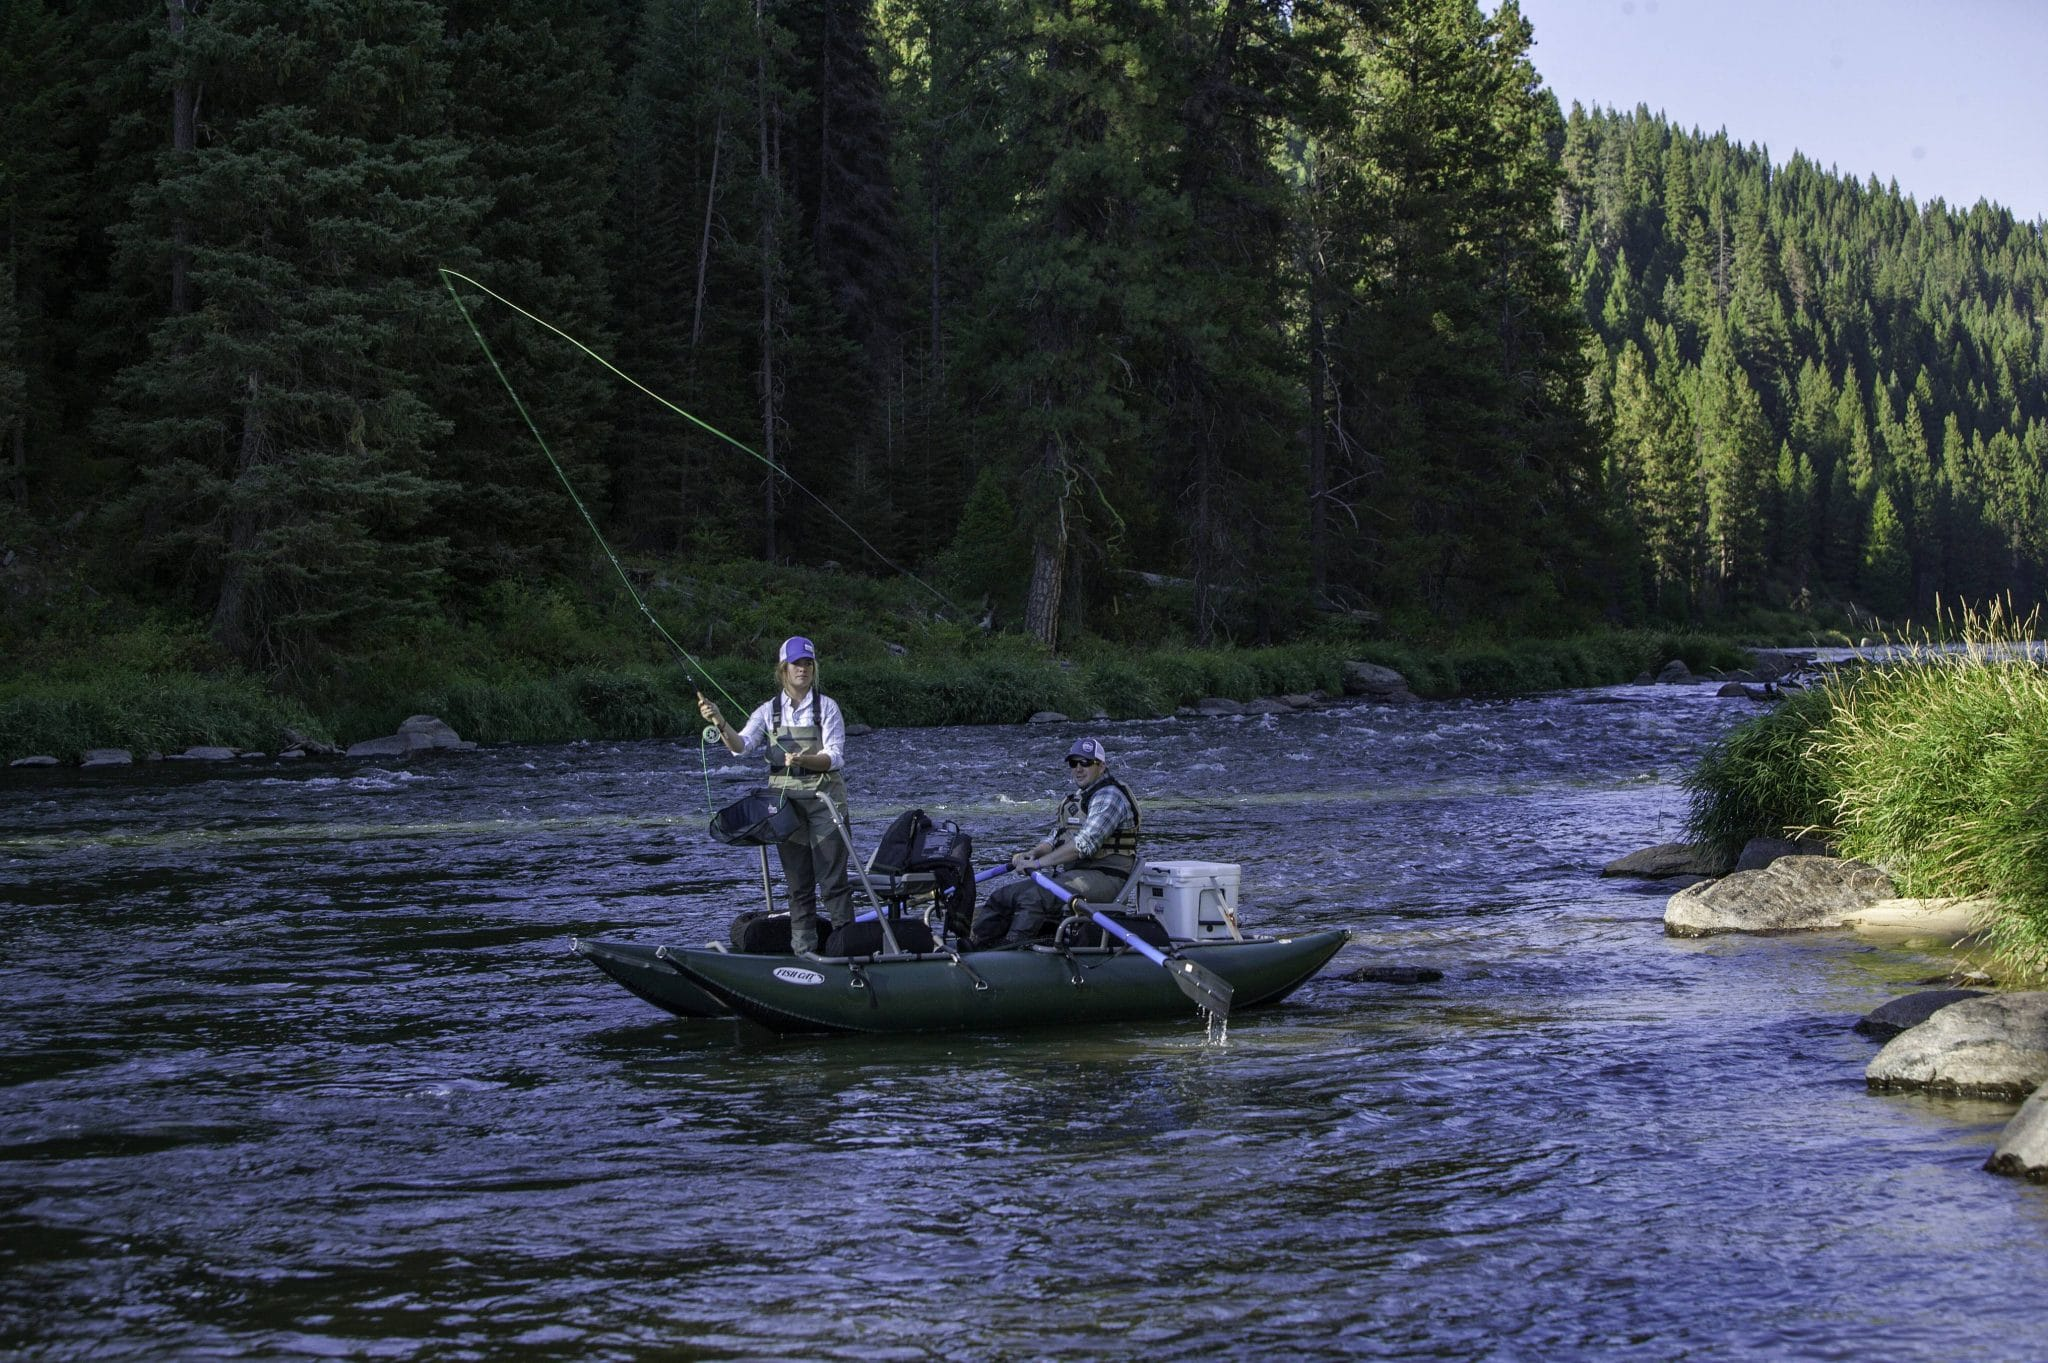 Fly fishing on the Cabarton section of the North Fork of the Payette River.